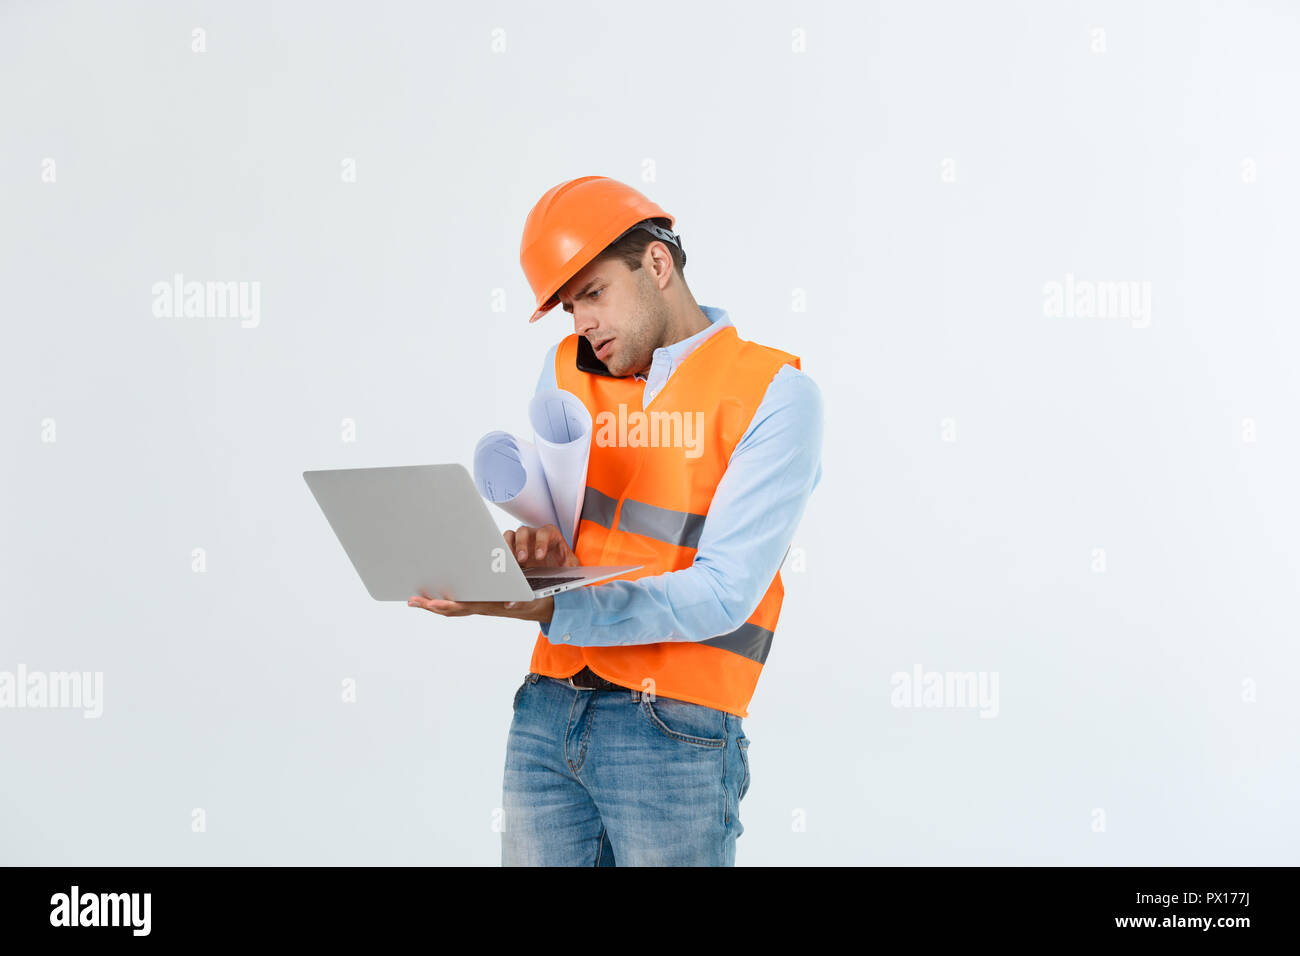 Engineer, architect, on busy face speaks on smartphone while holds blueprints. Man, foreman in helmet speaking on phone, red background. Architect calling engineer to fix plan. Communication concept - Stock Image